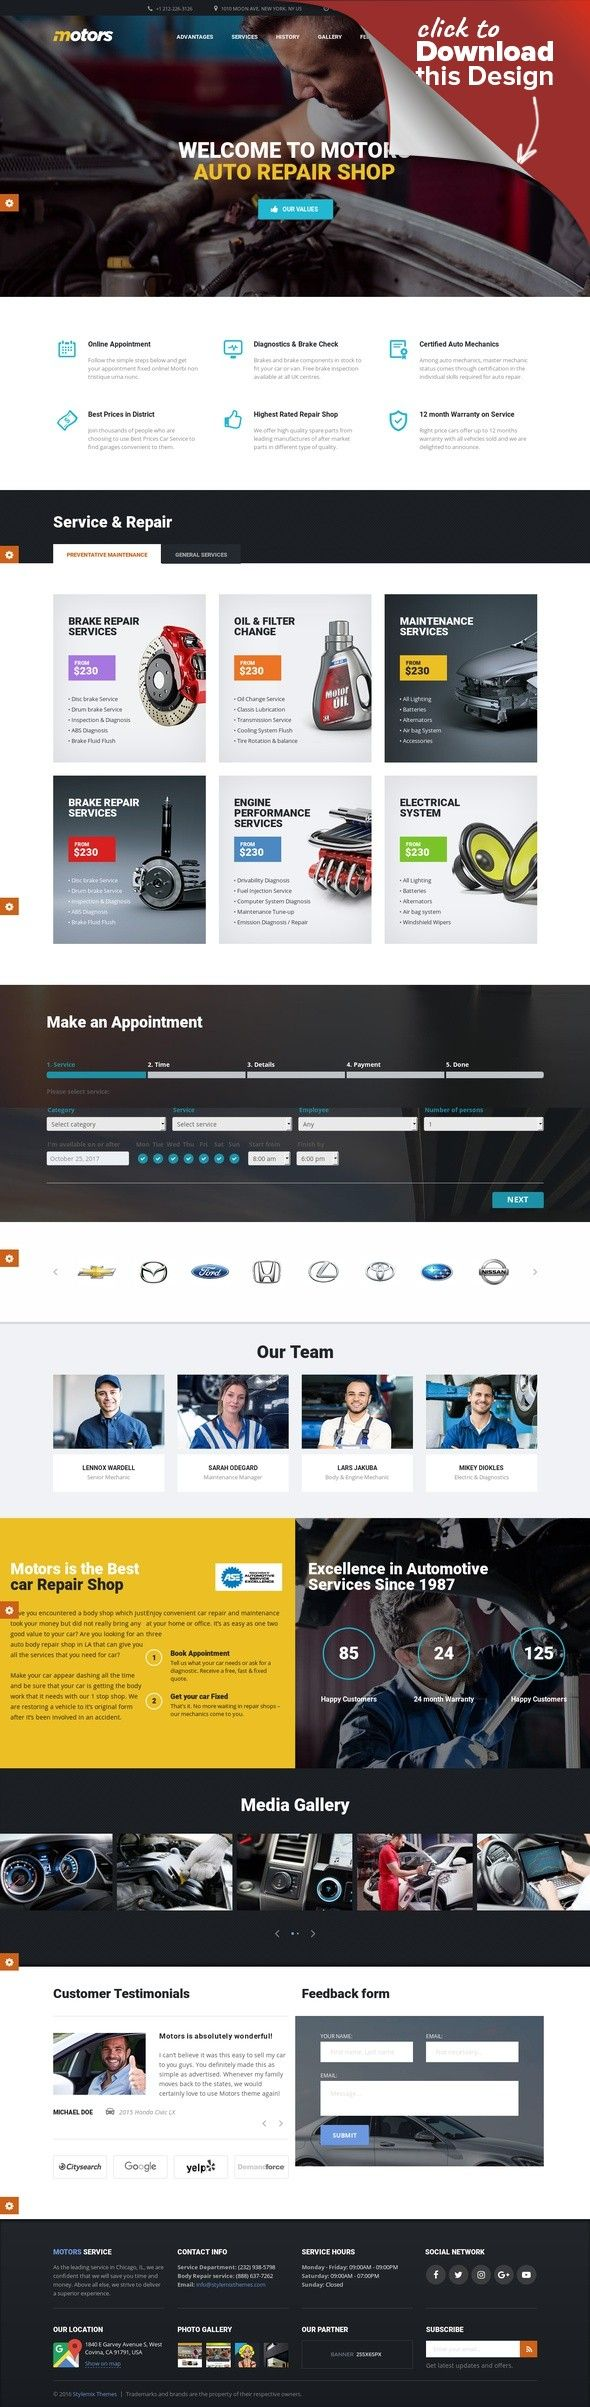 Motors - Automotive, Cars, Vehicle, Boat Dealership, Classifieds WordPress Theme auto, automotive, bikes, car dealer, car dealership, cars, classified, dealership wordpress, inventory management, listing, motorcycle, rent, vehicle, vehicle listing, vehicle search Motors for WordPress helps you create a feature packed website for any automotive and boat selling business, with six stunning premade demos ready to f...